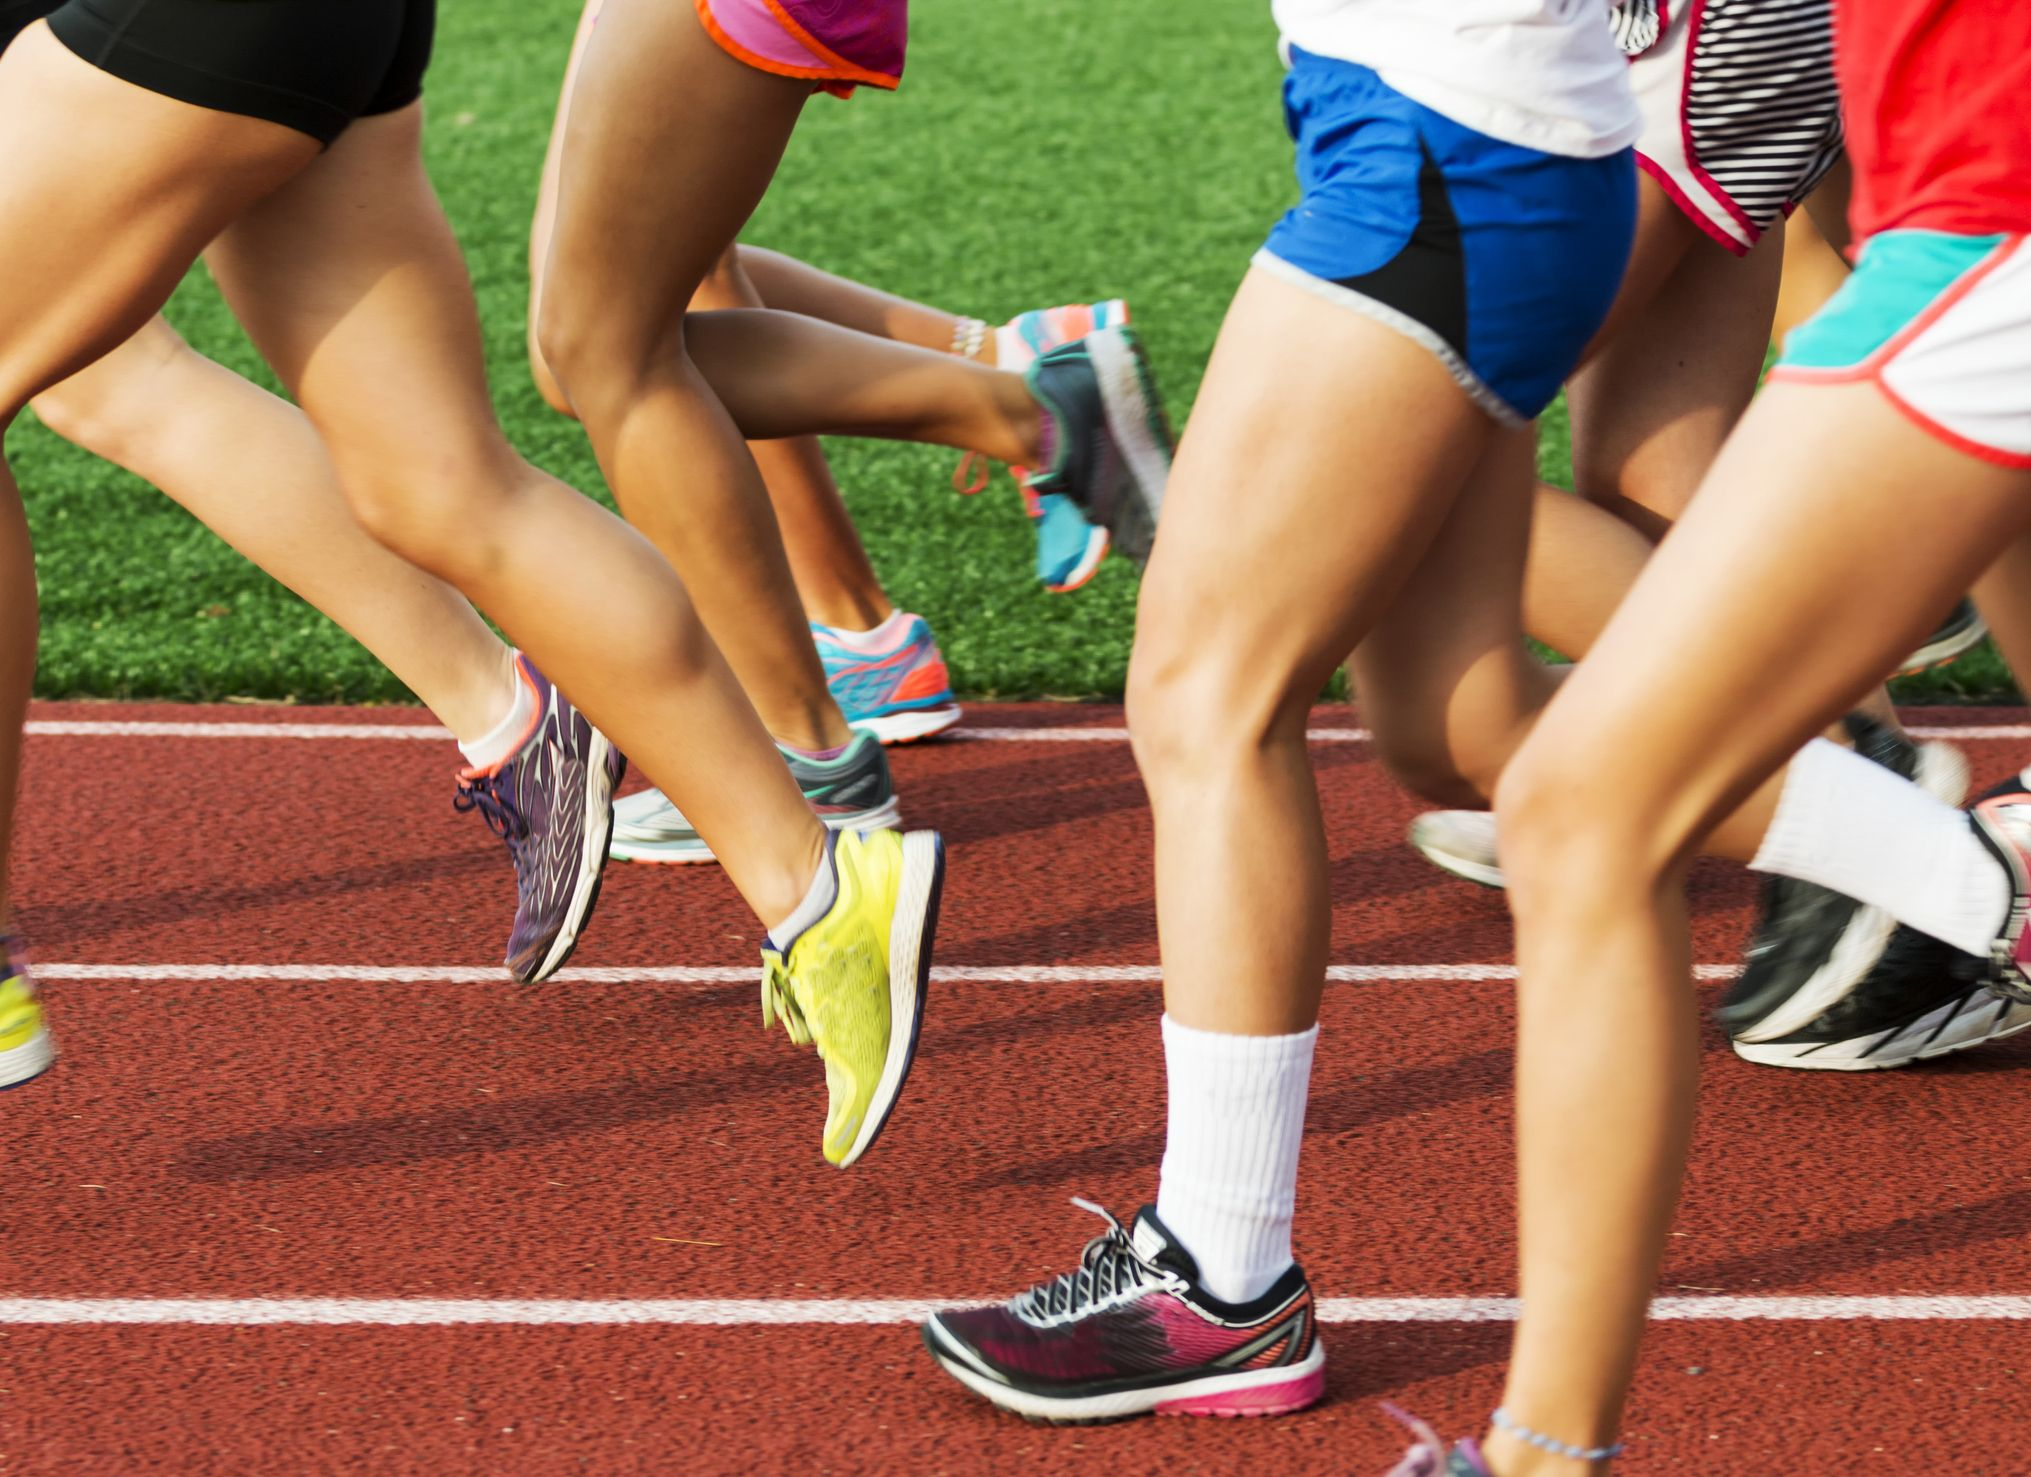 Runners legs on a red track